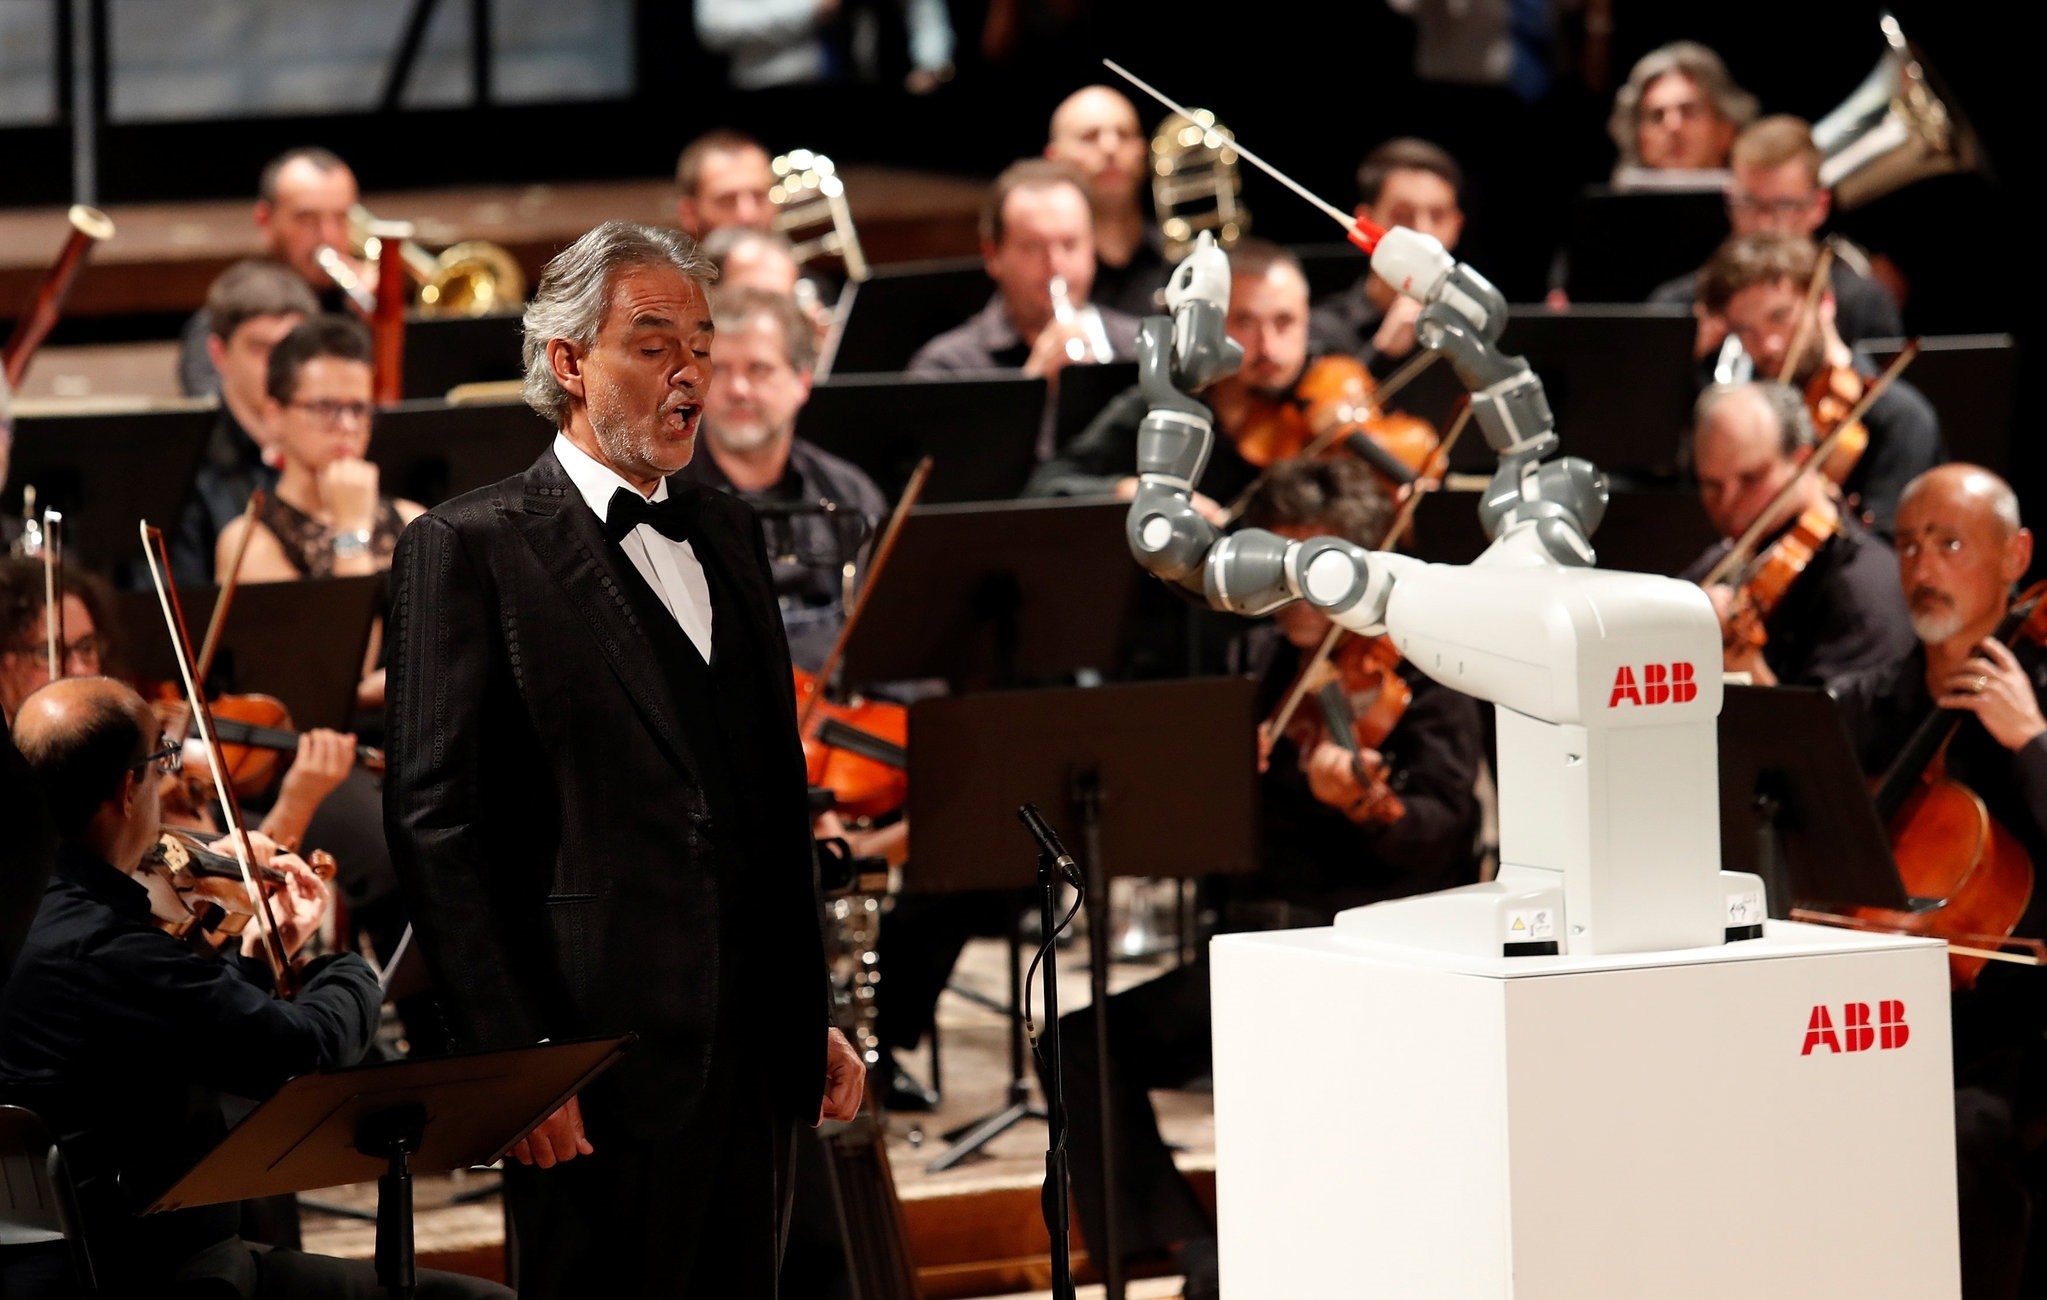 Humanoid robot YuMi conducts the Lucca Philharmonic Orchestra performing a concert alongside Italian tenor Andrea Bocelli at the Verdi Theatre in Pisa, Italy September 12, 2017. (REUTERS Photo)